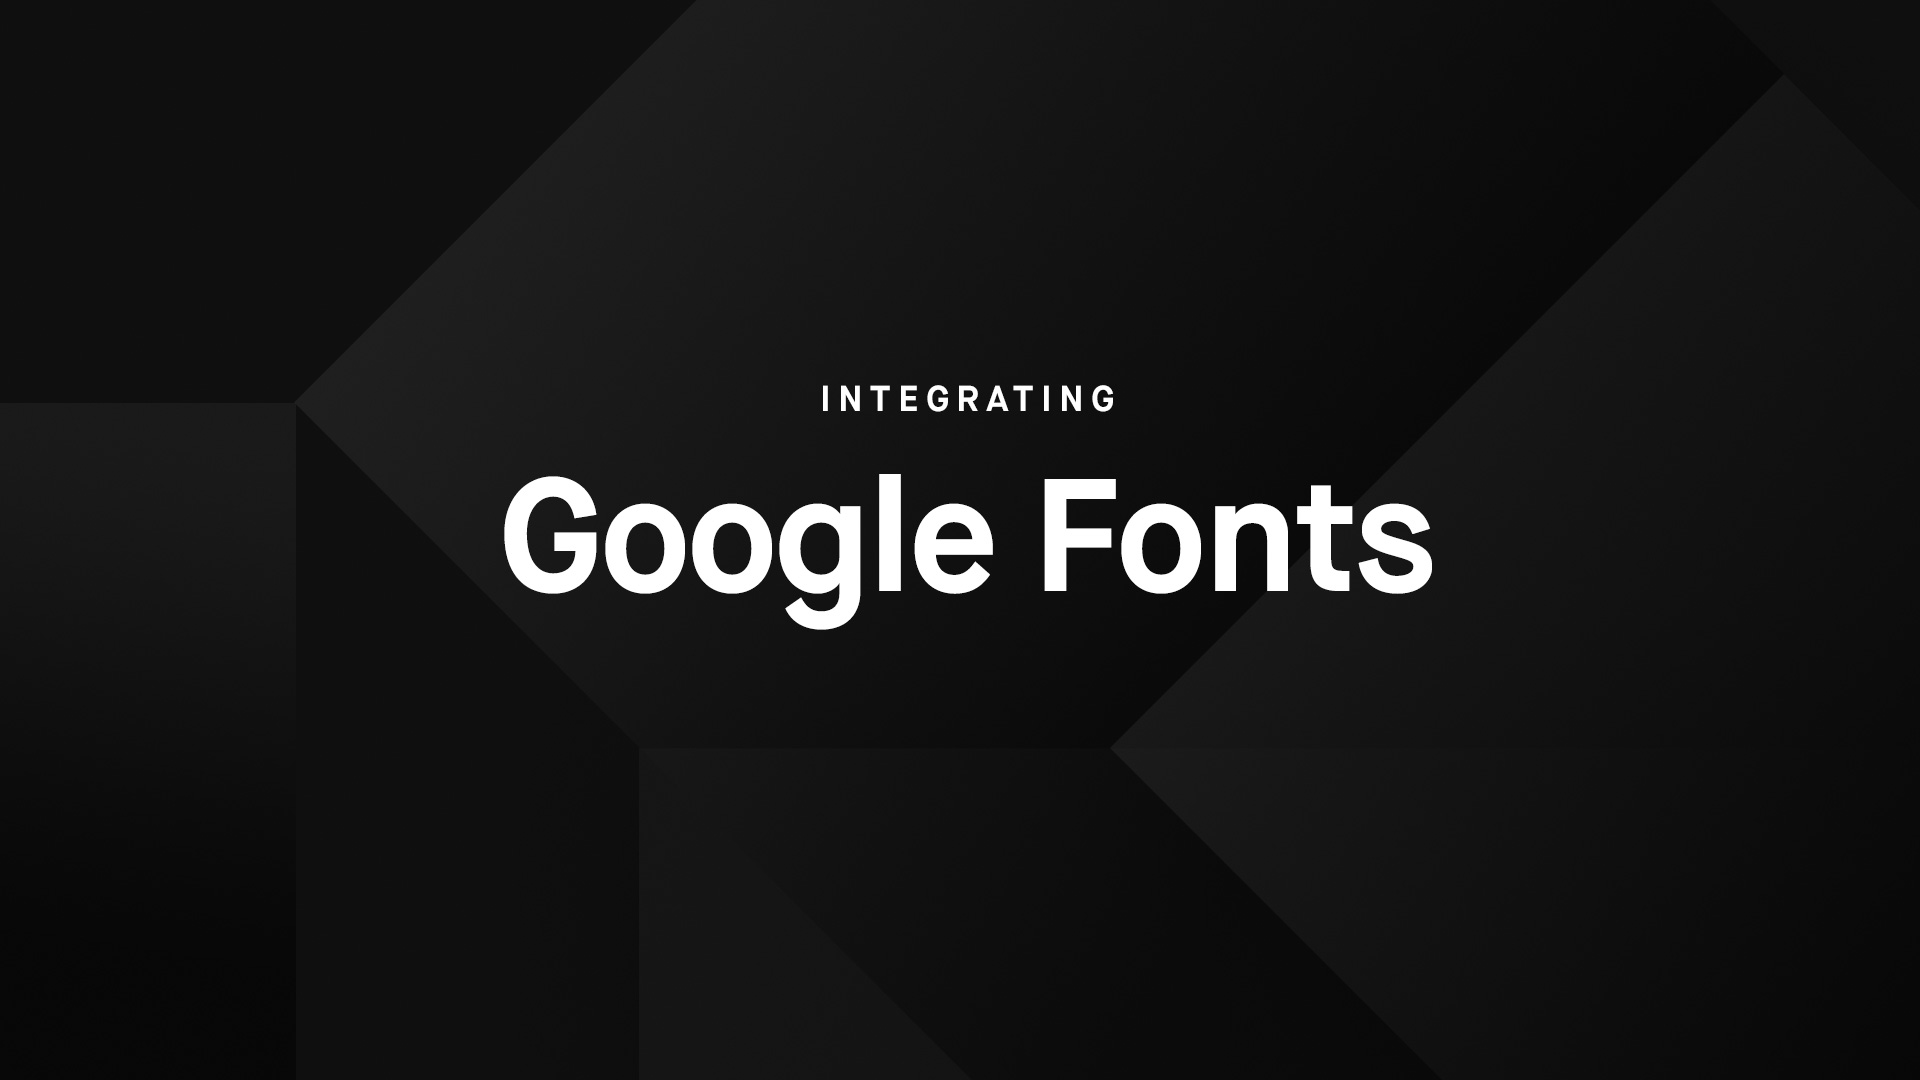 integrating-google-fonts-semplice